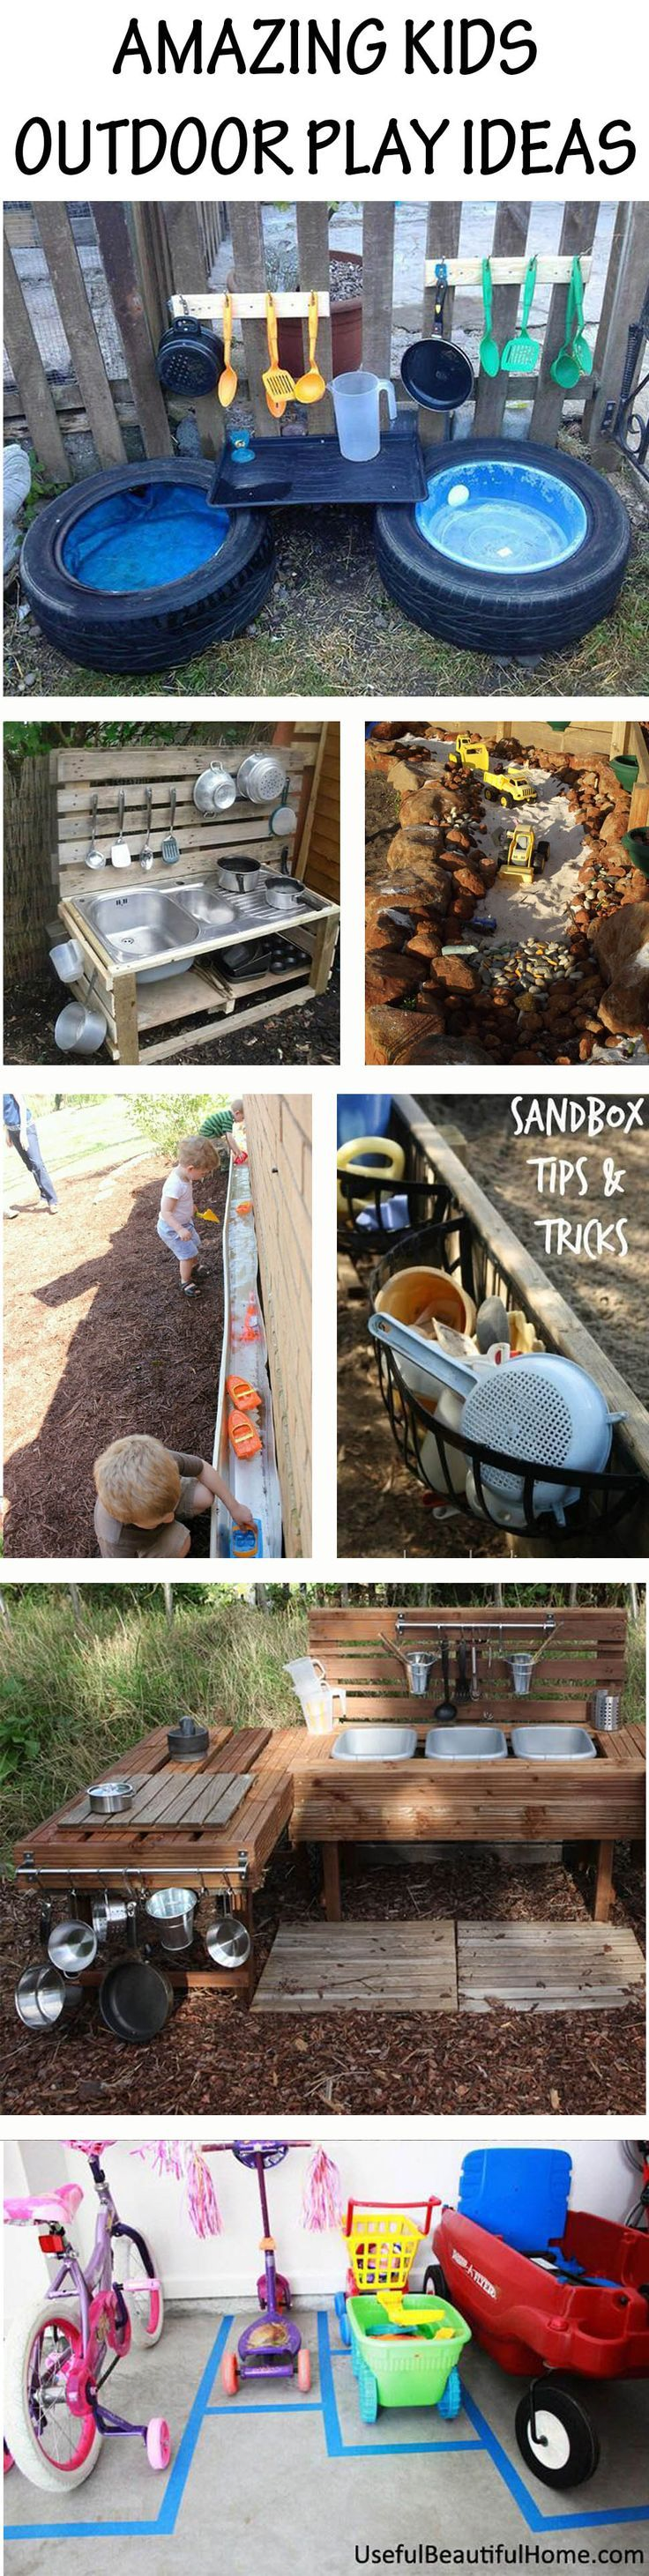 Best 25 Outdoor activities for kids ideas on Pinterest